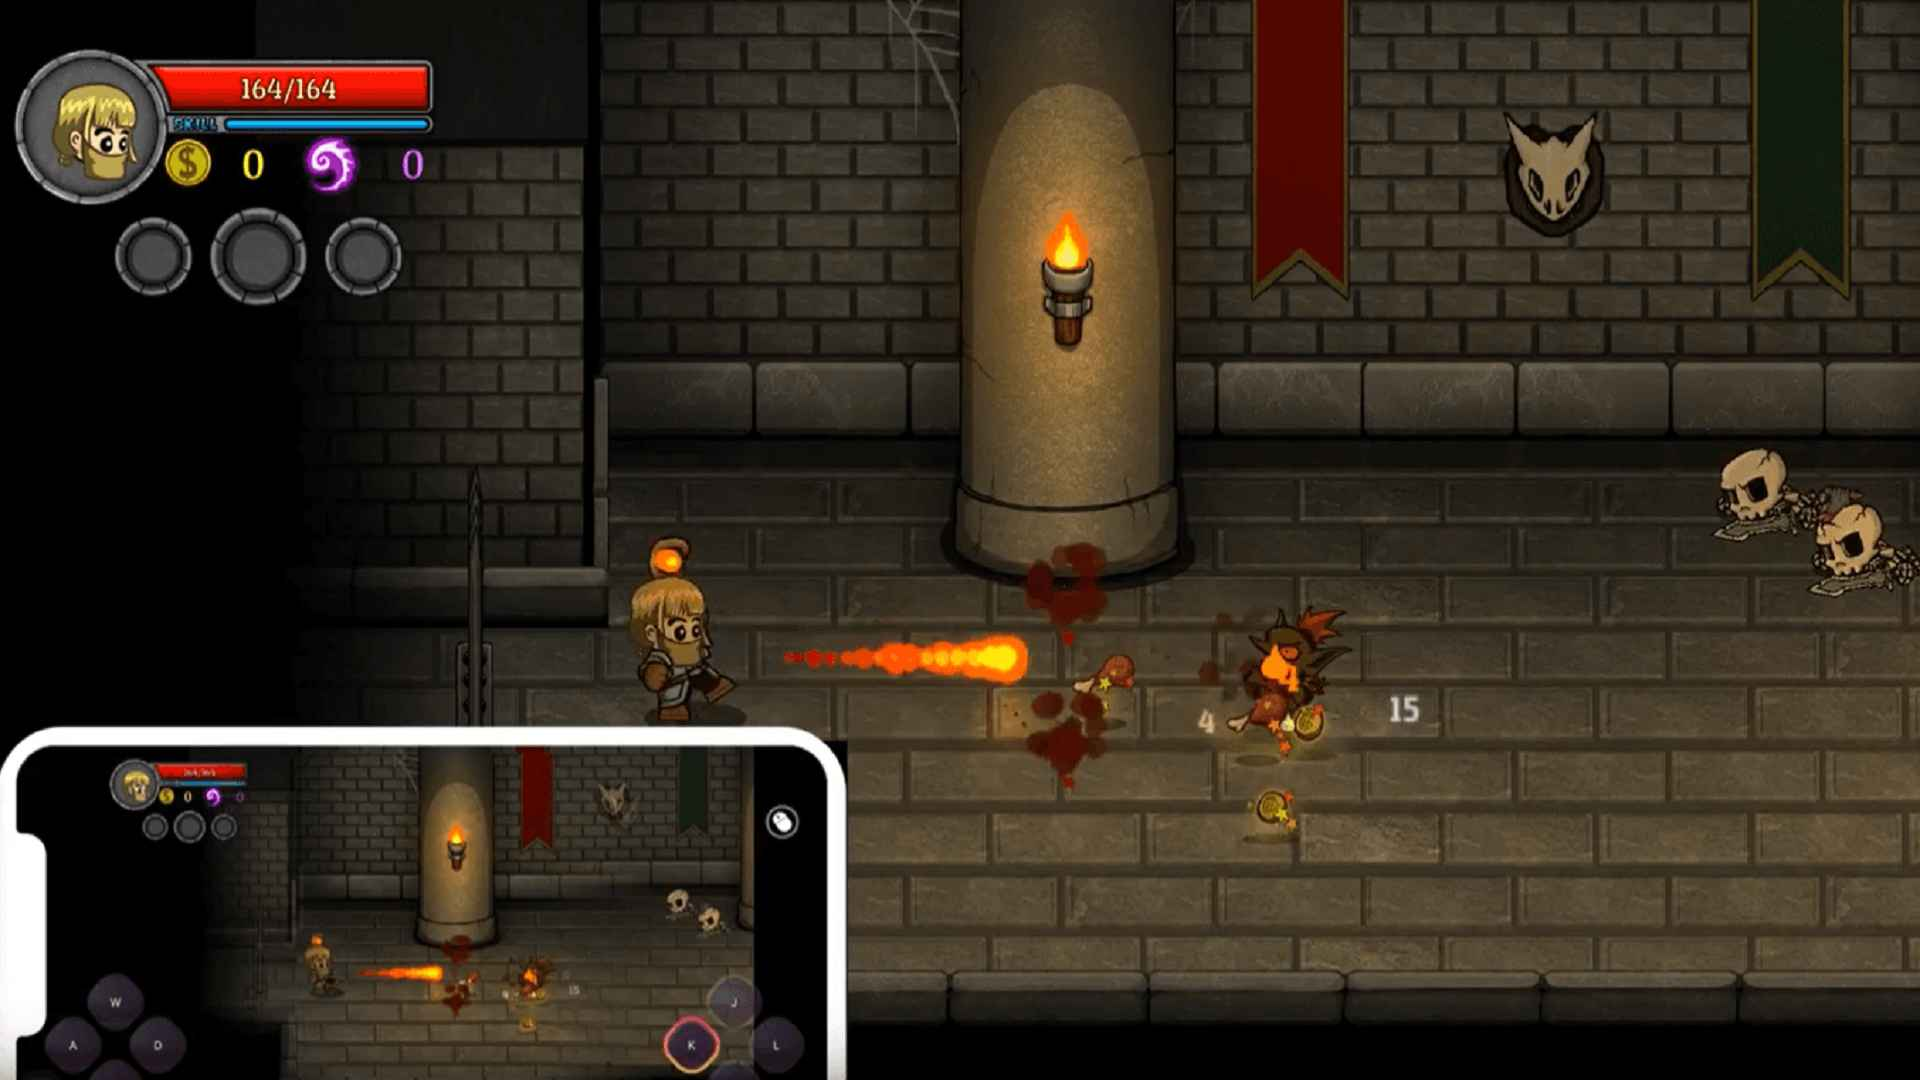 Remote Play PC Game on Smartphone